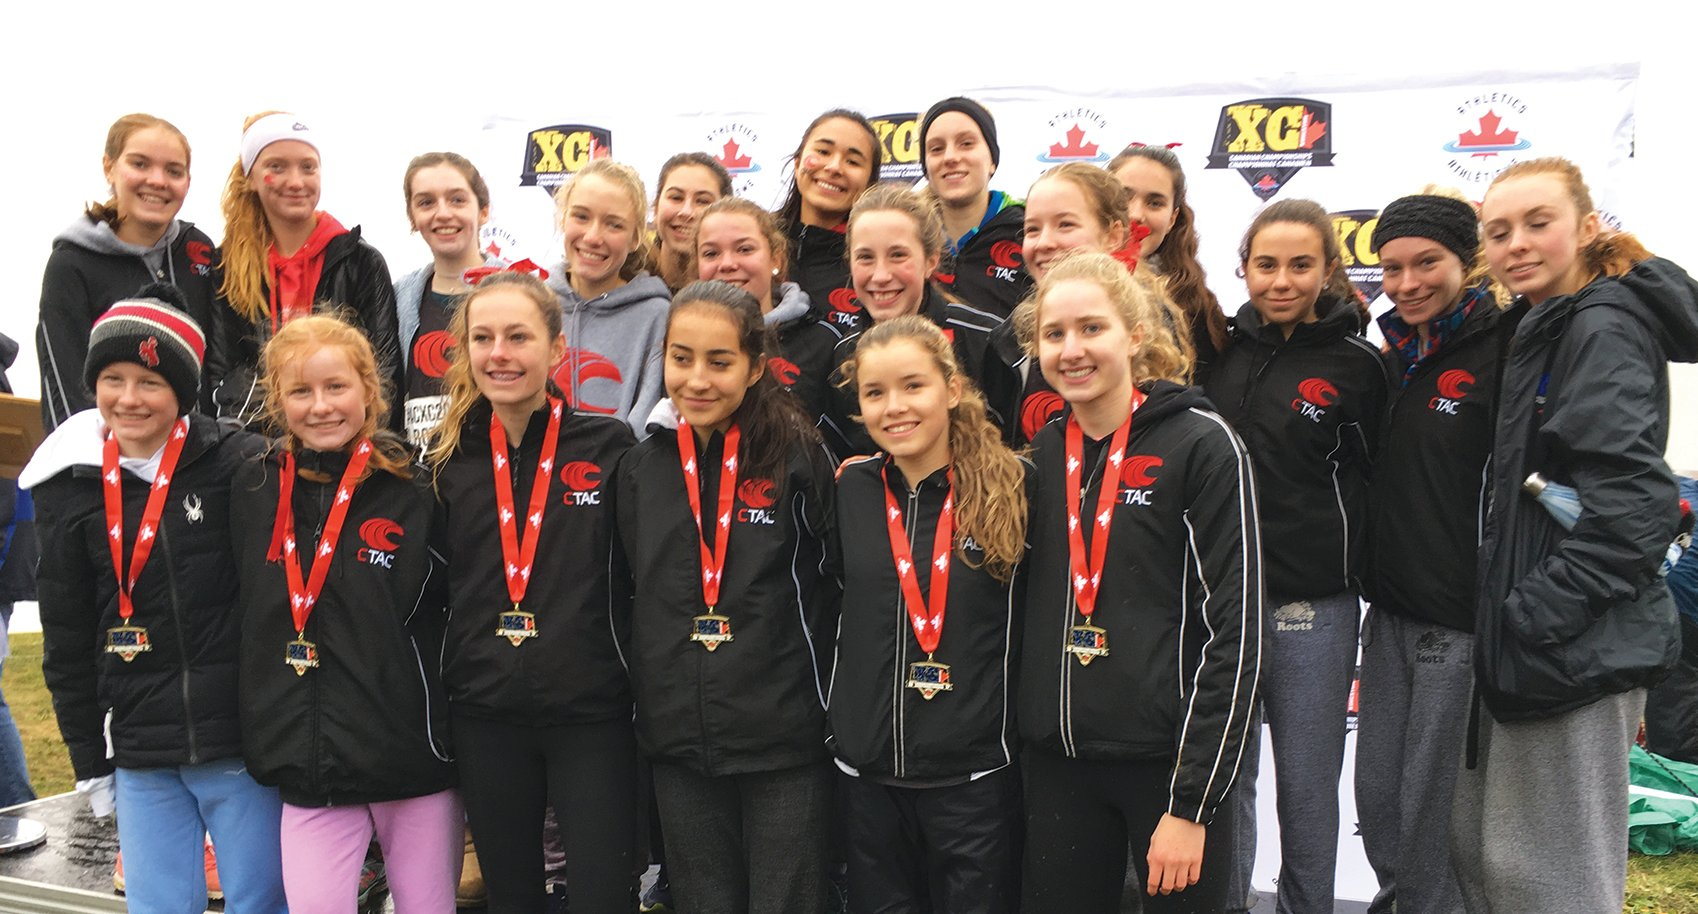 Under 18 girls of Central Toronto Athletic Club. Photo By Dave Christiani.